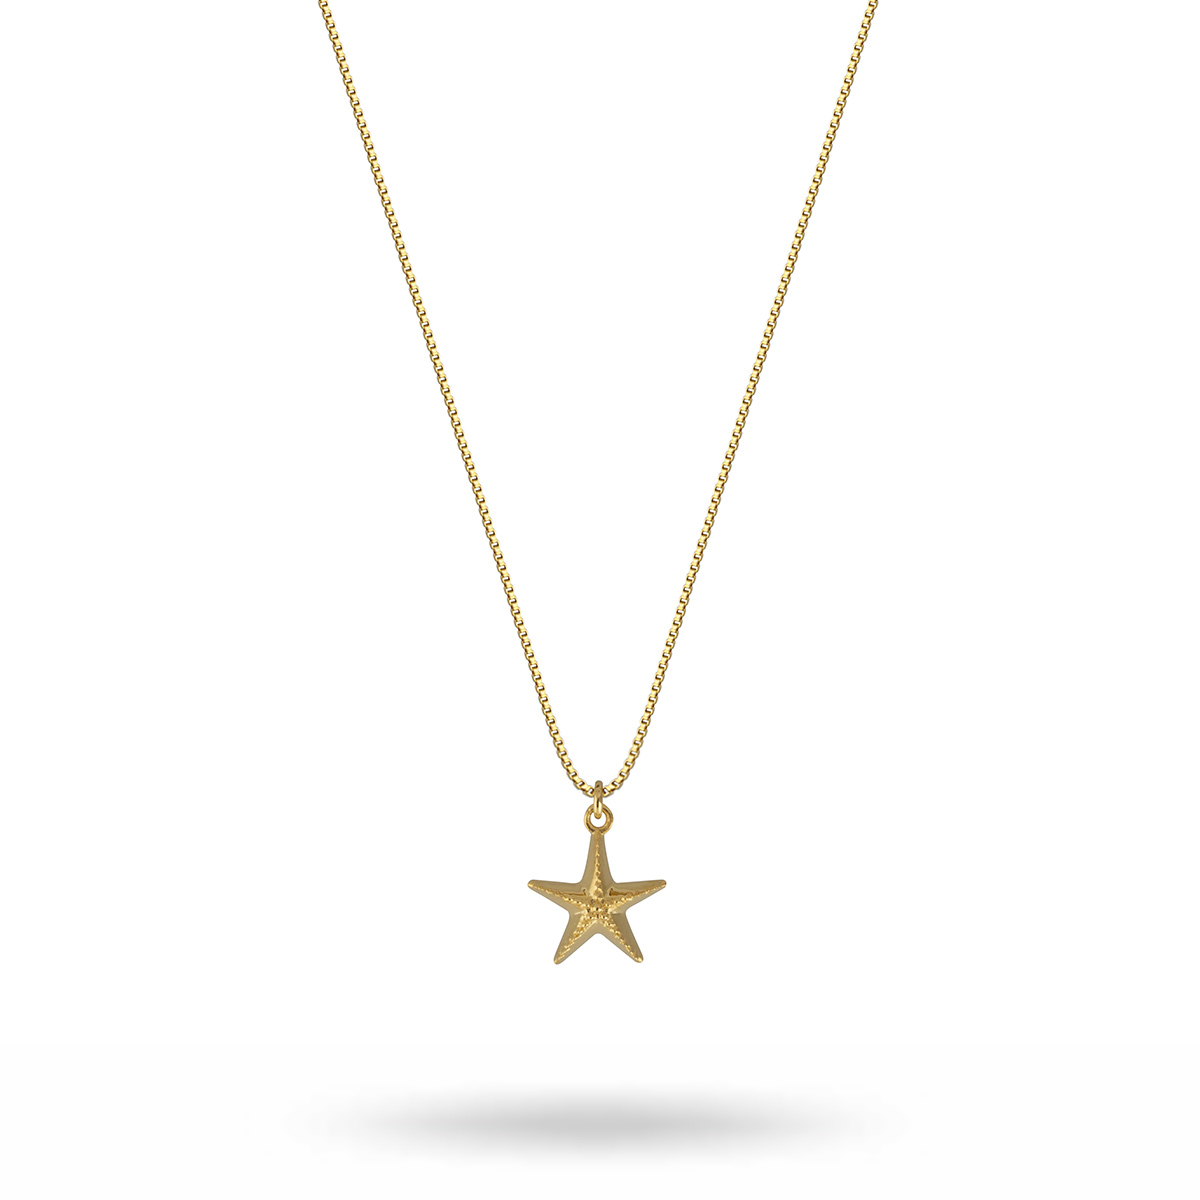 NG1239-1-Beaches-Starfish-necklace-gold